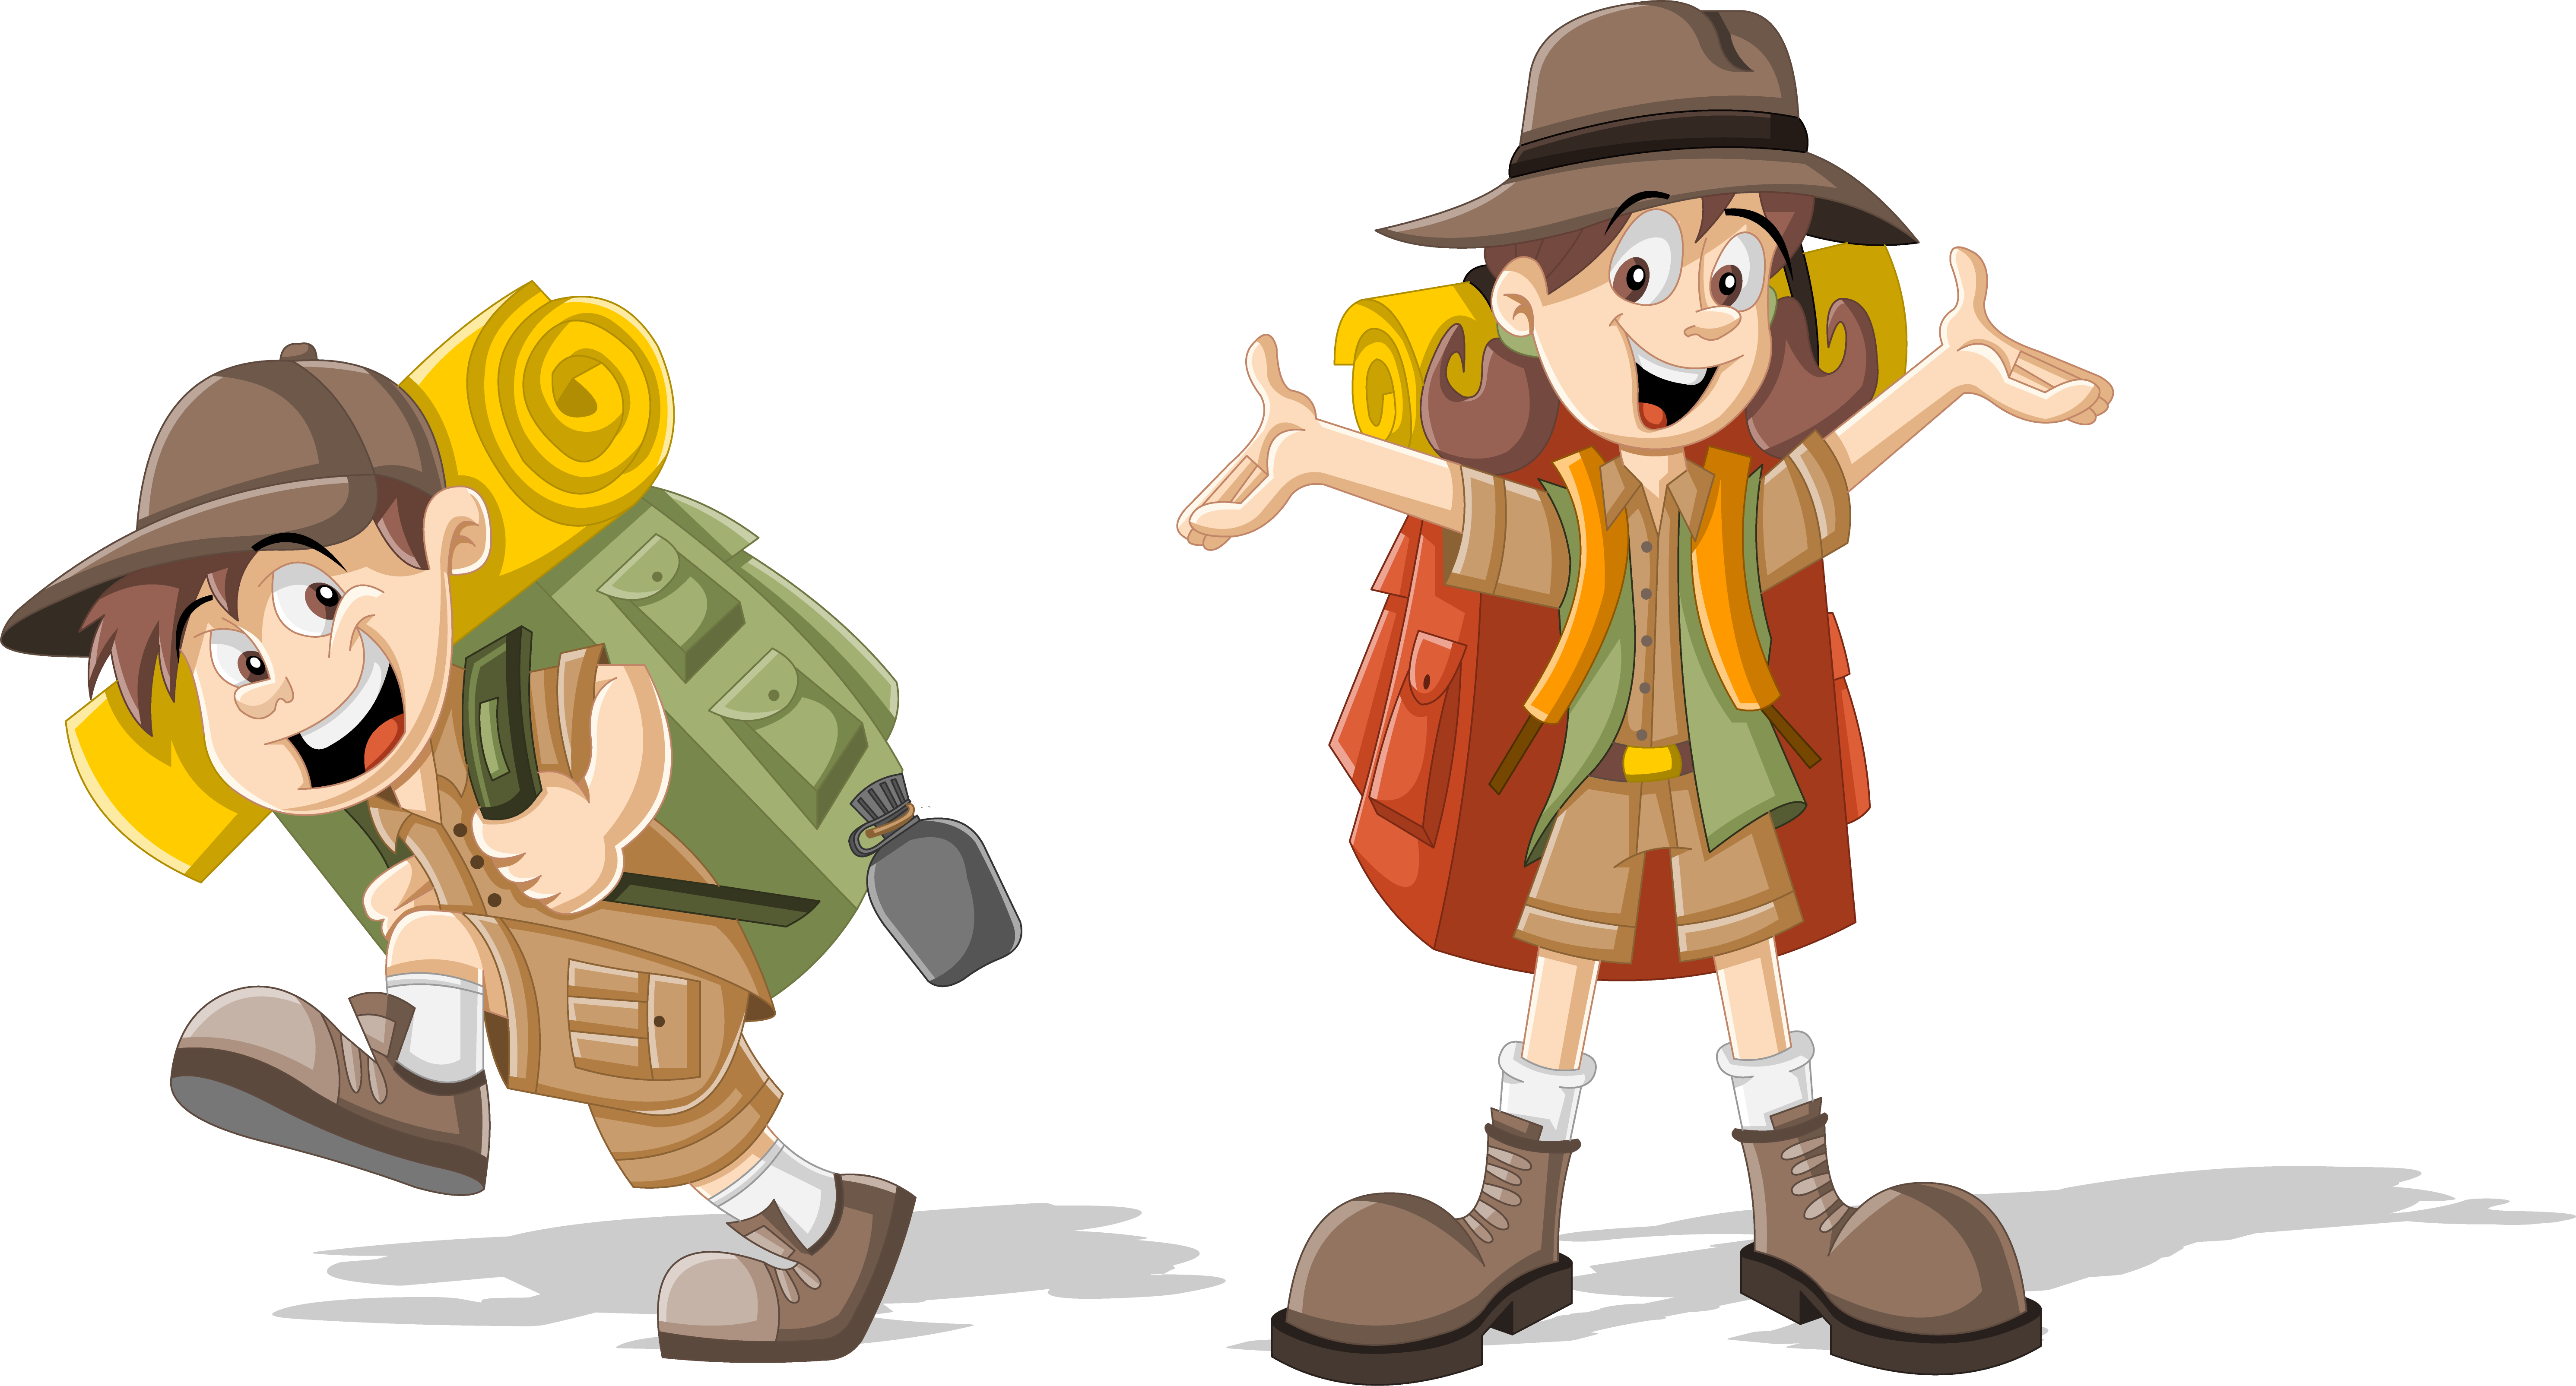 Scouting clip art children. Clipart backpack animated